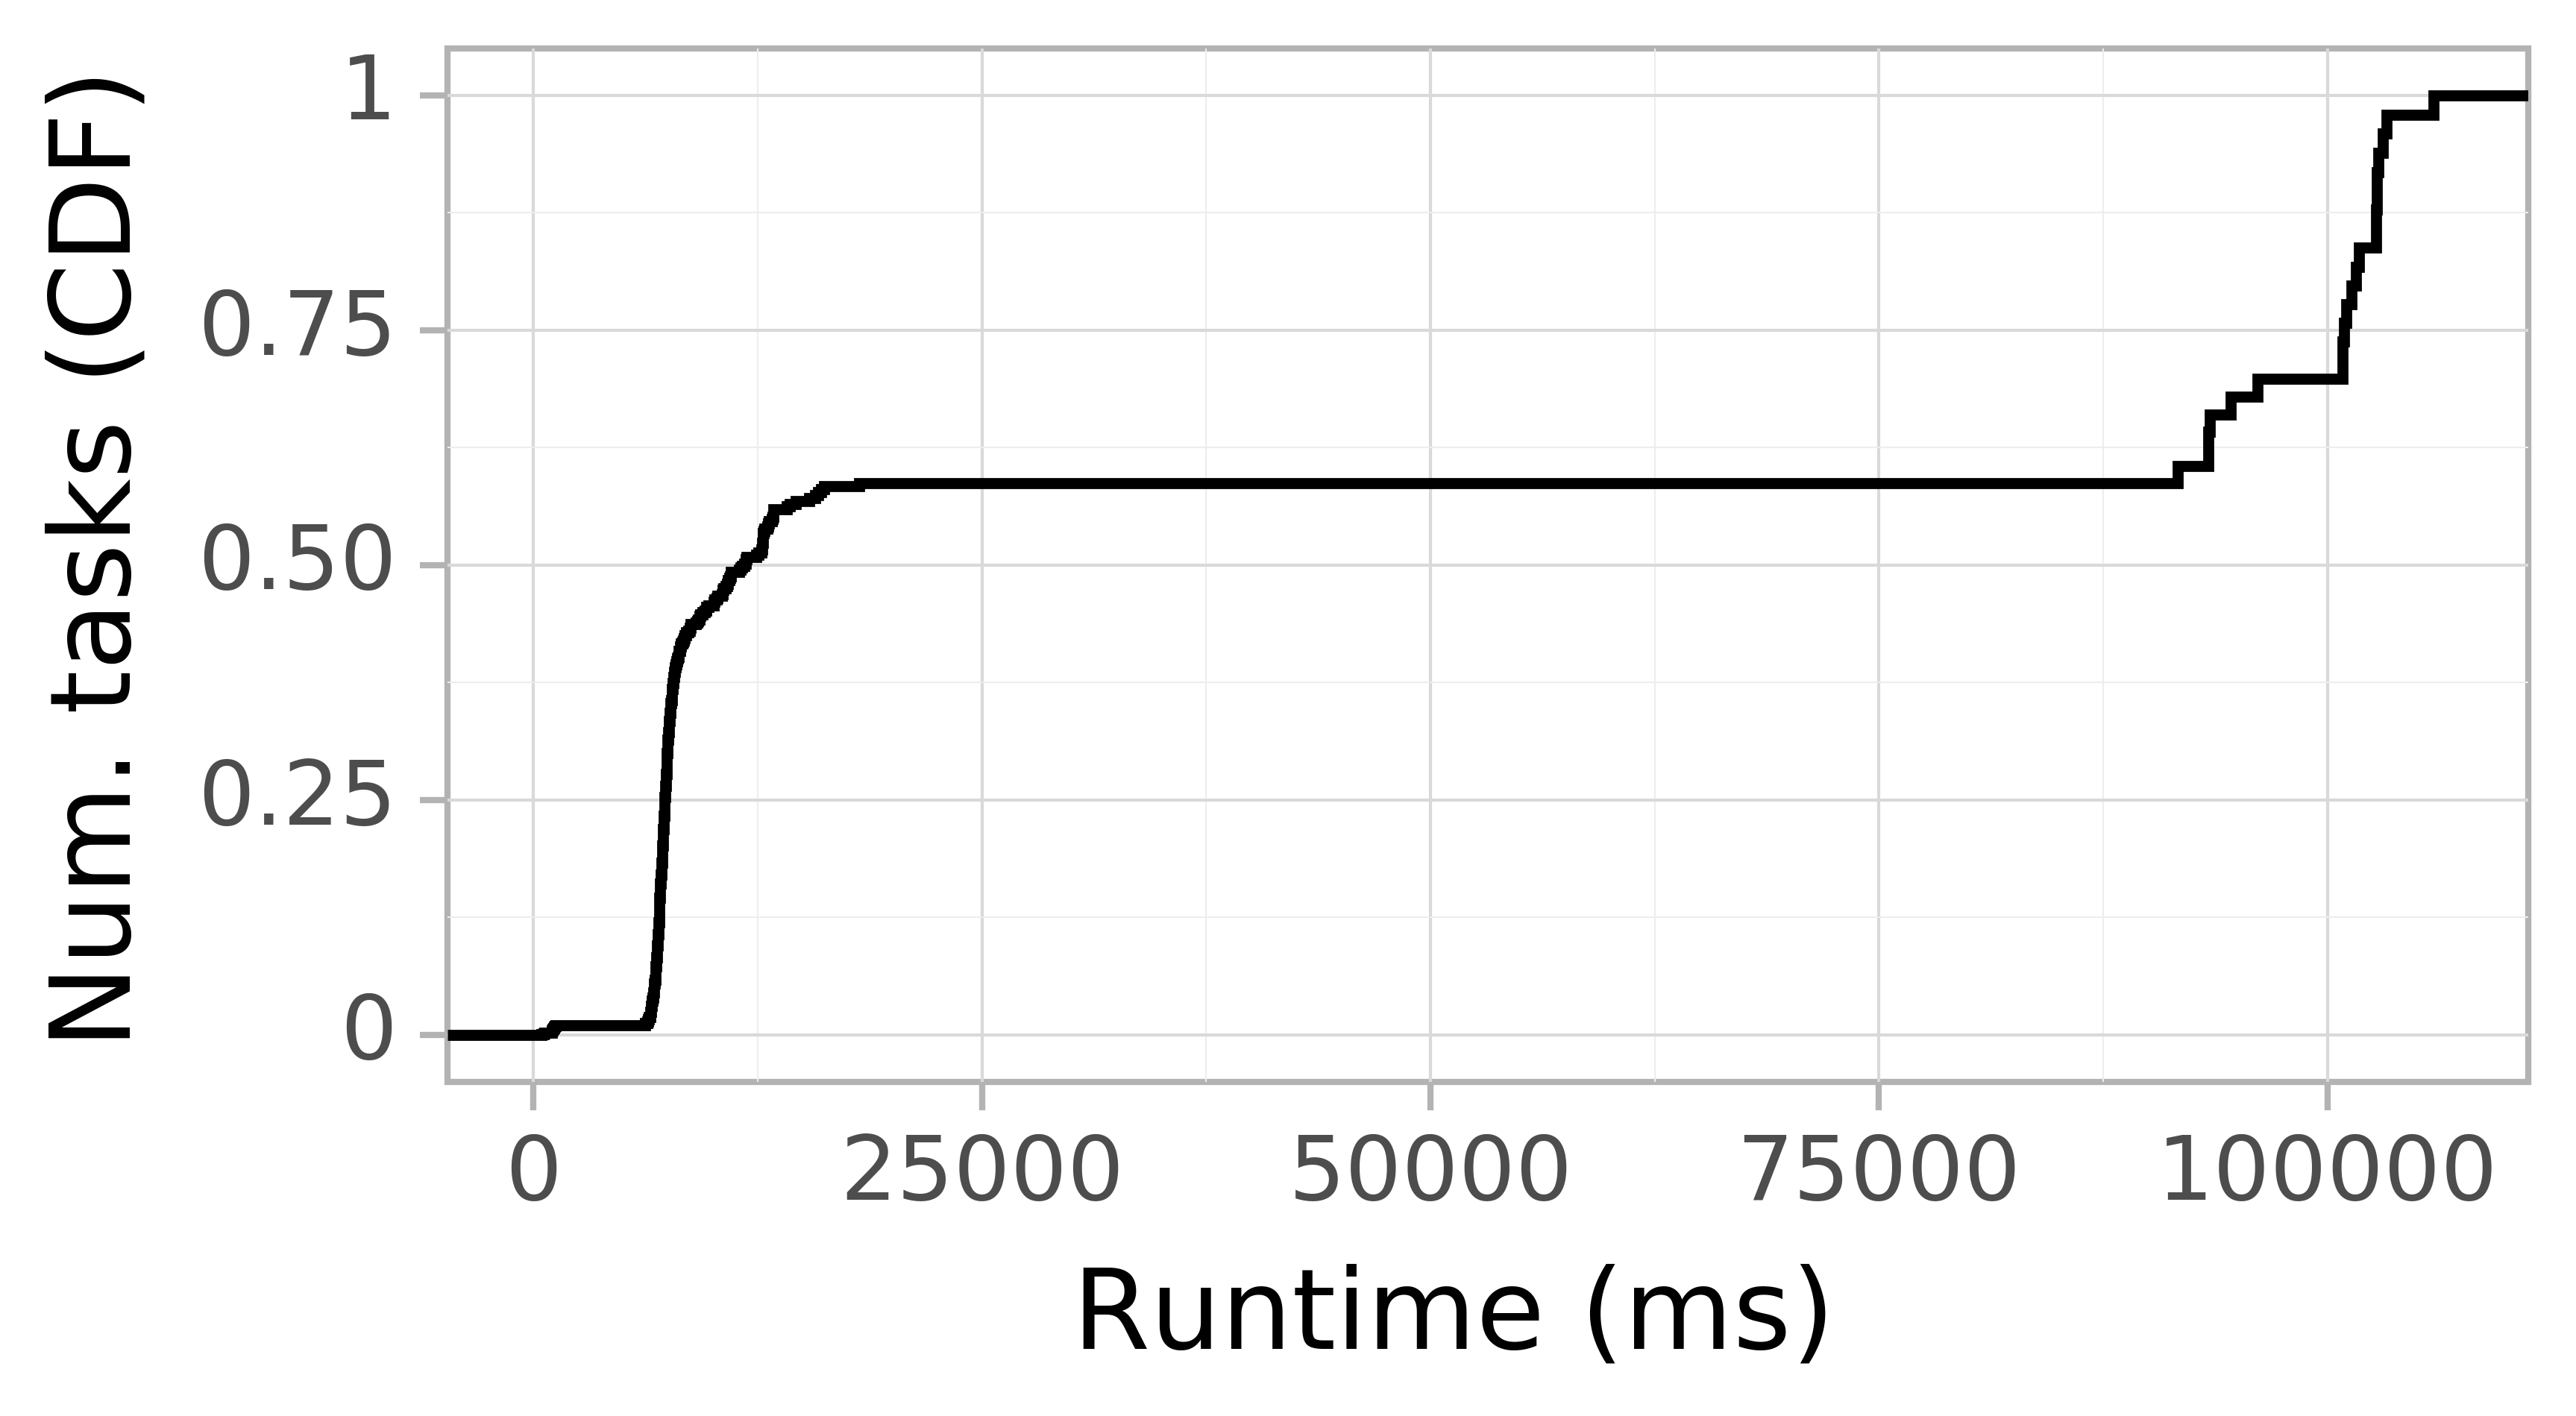 Task runtime CDF graph for the askalon-new_ee36 trace.